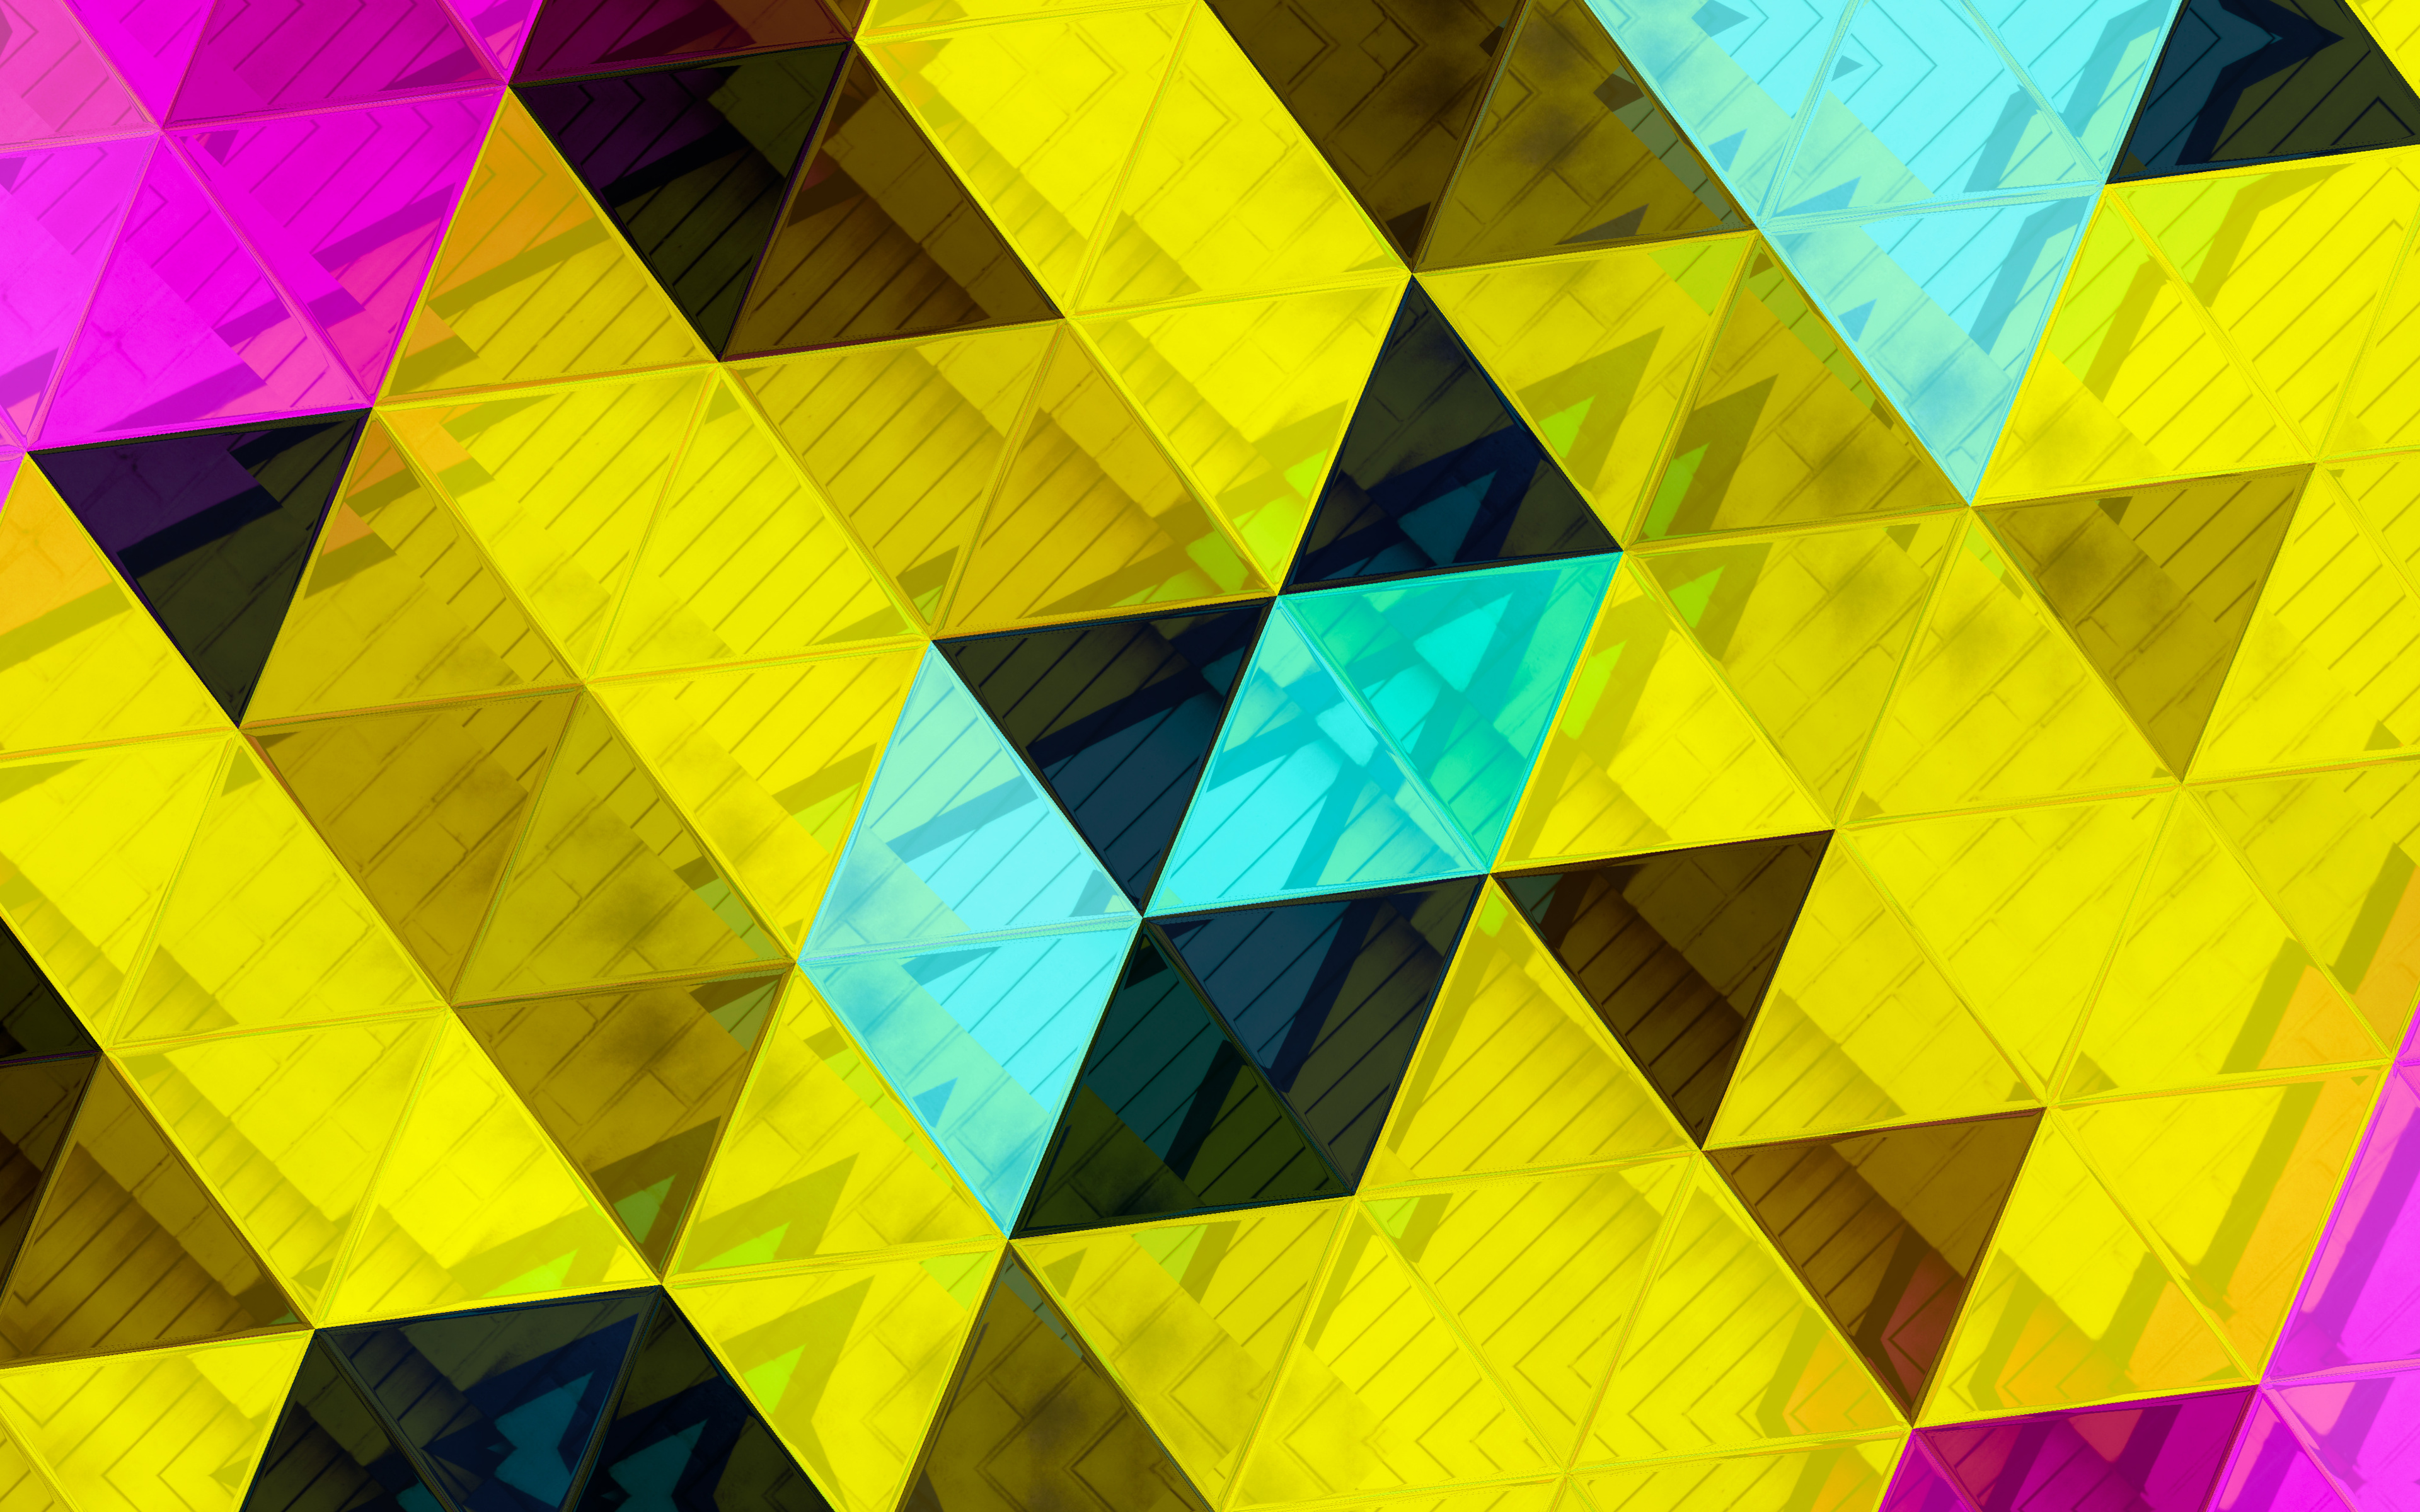 triangles-abstract-4k-bq.jpg